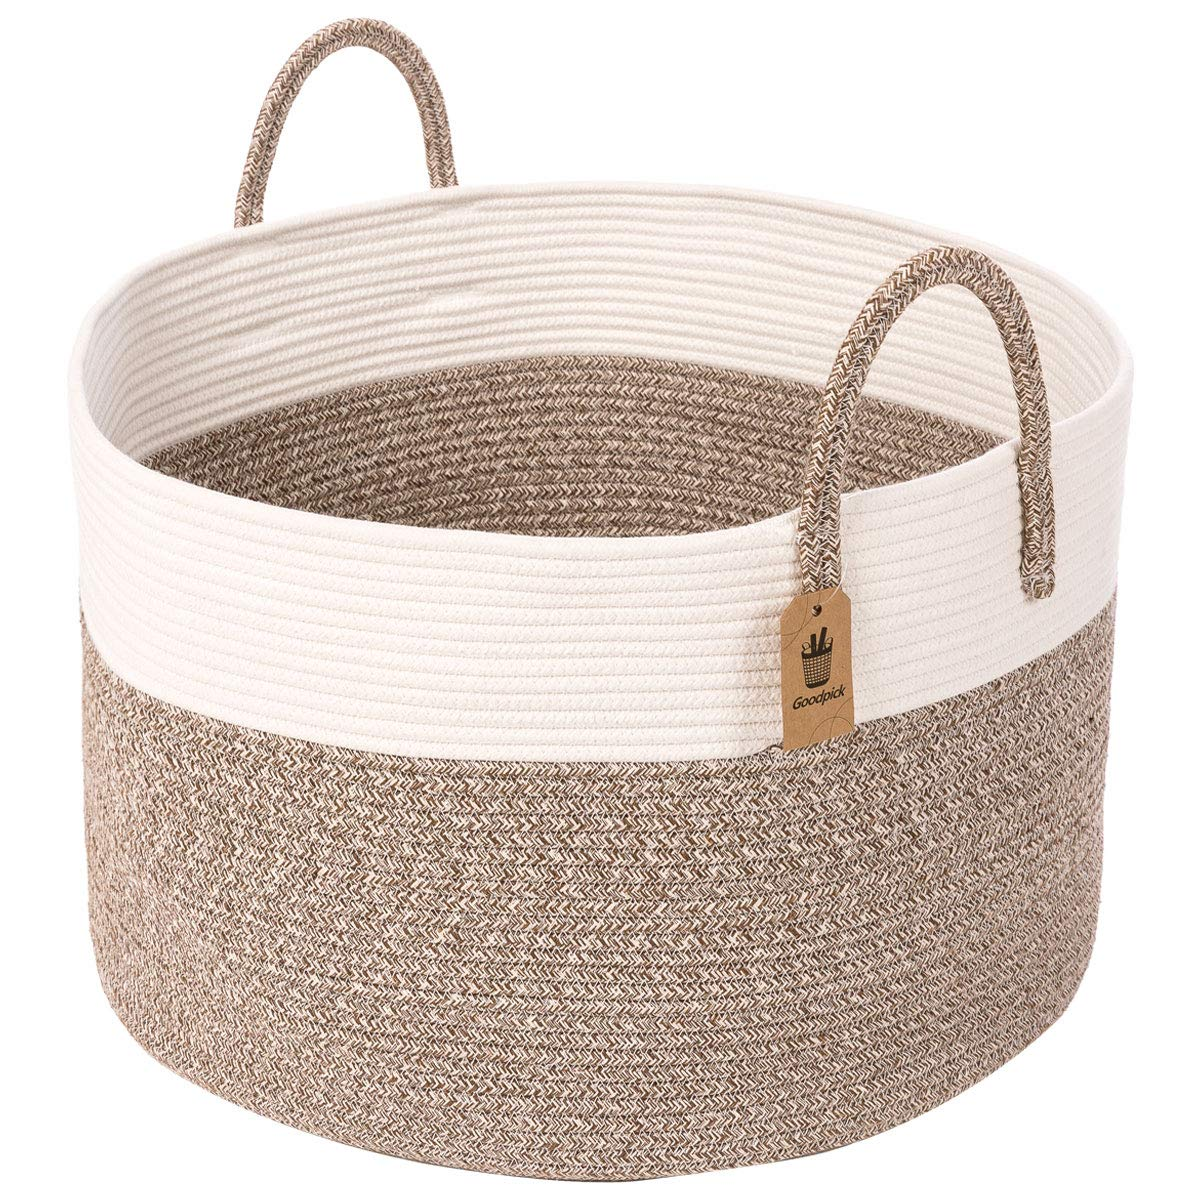 "INDRESSME Cotton Rope Basket | Extra Large Woven Hamper Basket with Handles Nursery Storage Baby Laundry Basket Rope Storage Bin for Organizer Toys, Pillow 20""D x 13""H"